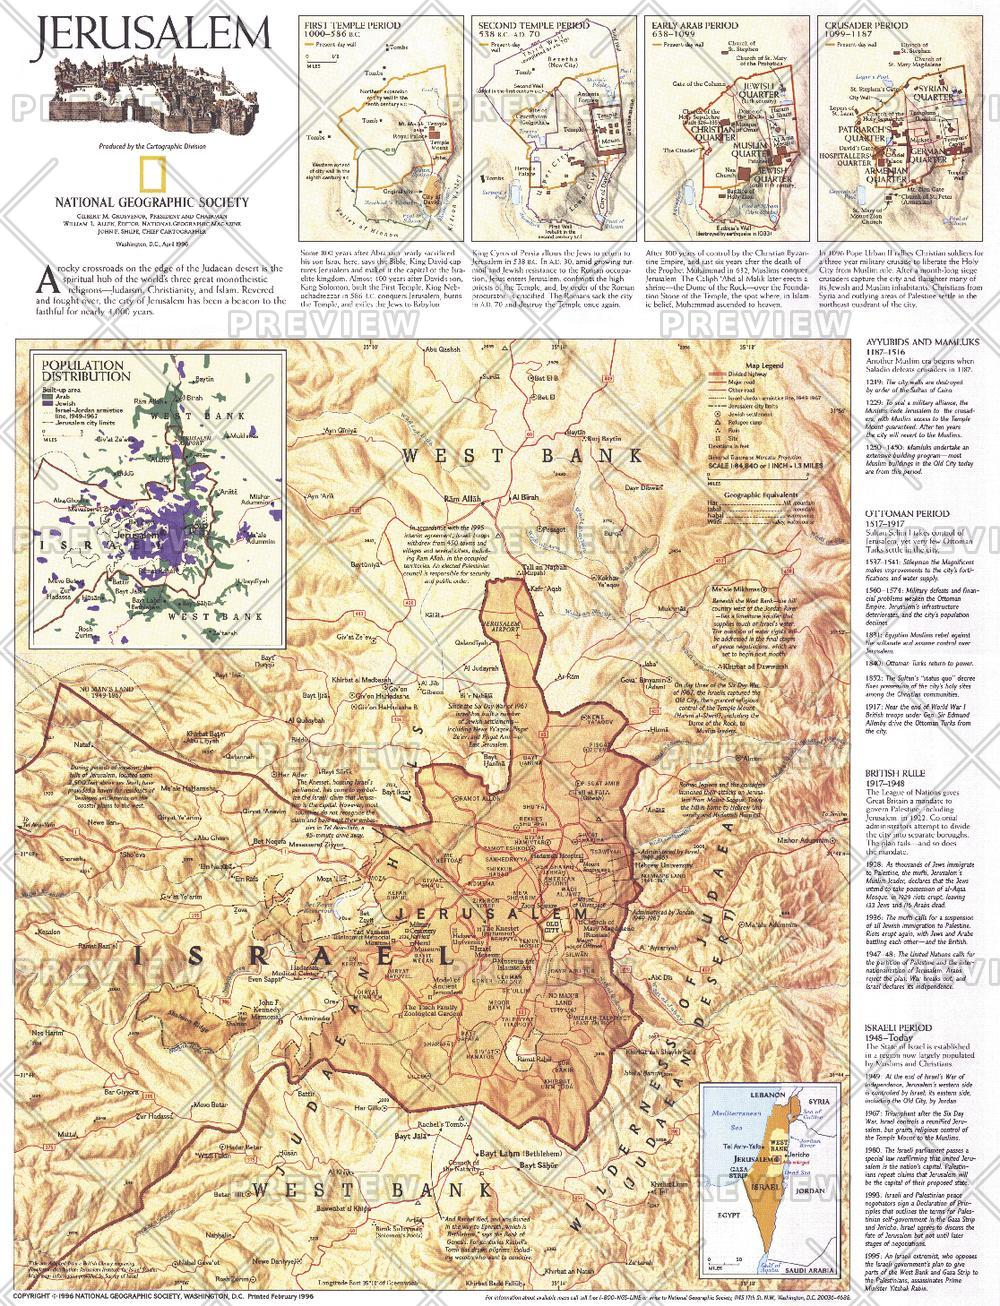 Jerusalem  -  Published 1996